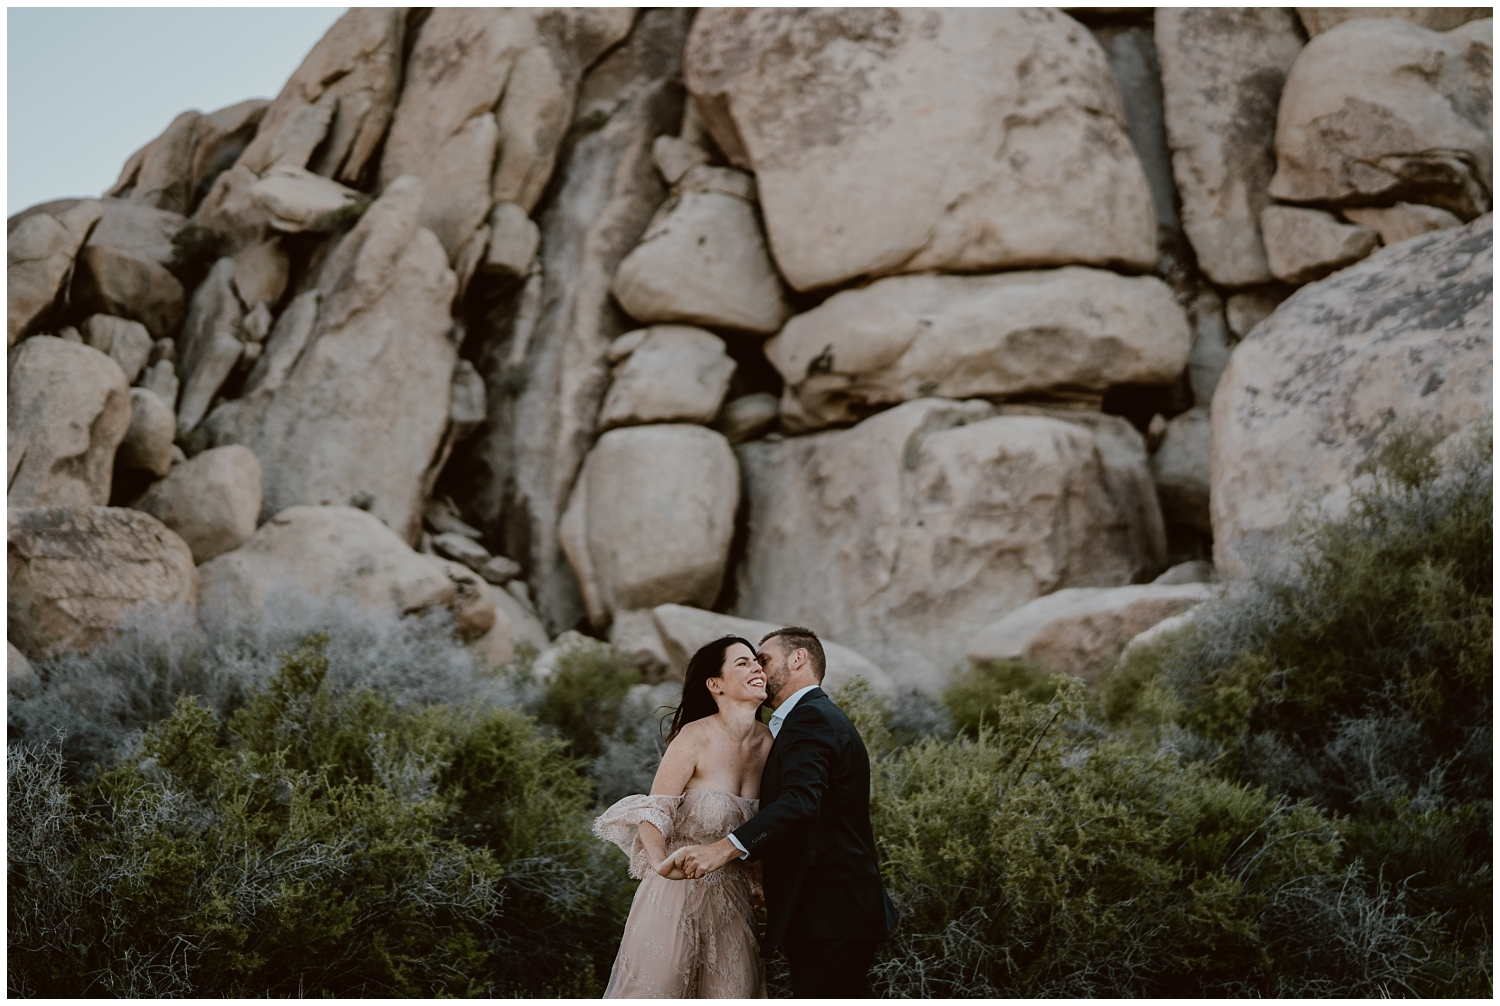 Cap-Rock-Joshua-Tree-Elopement-0023.jpg